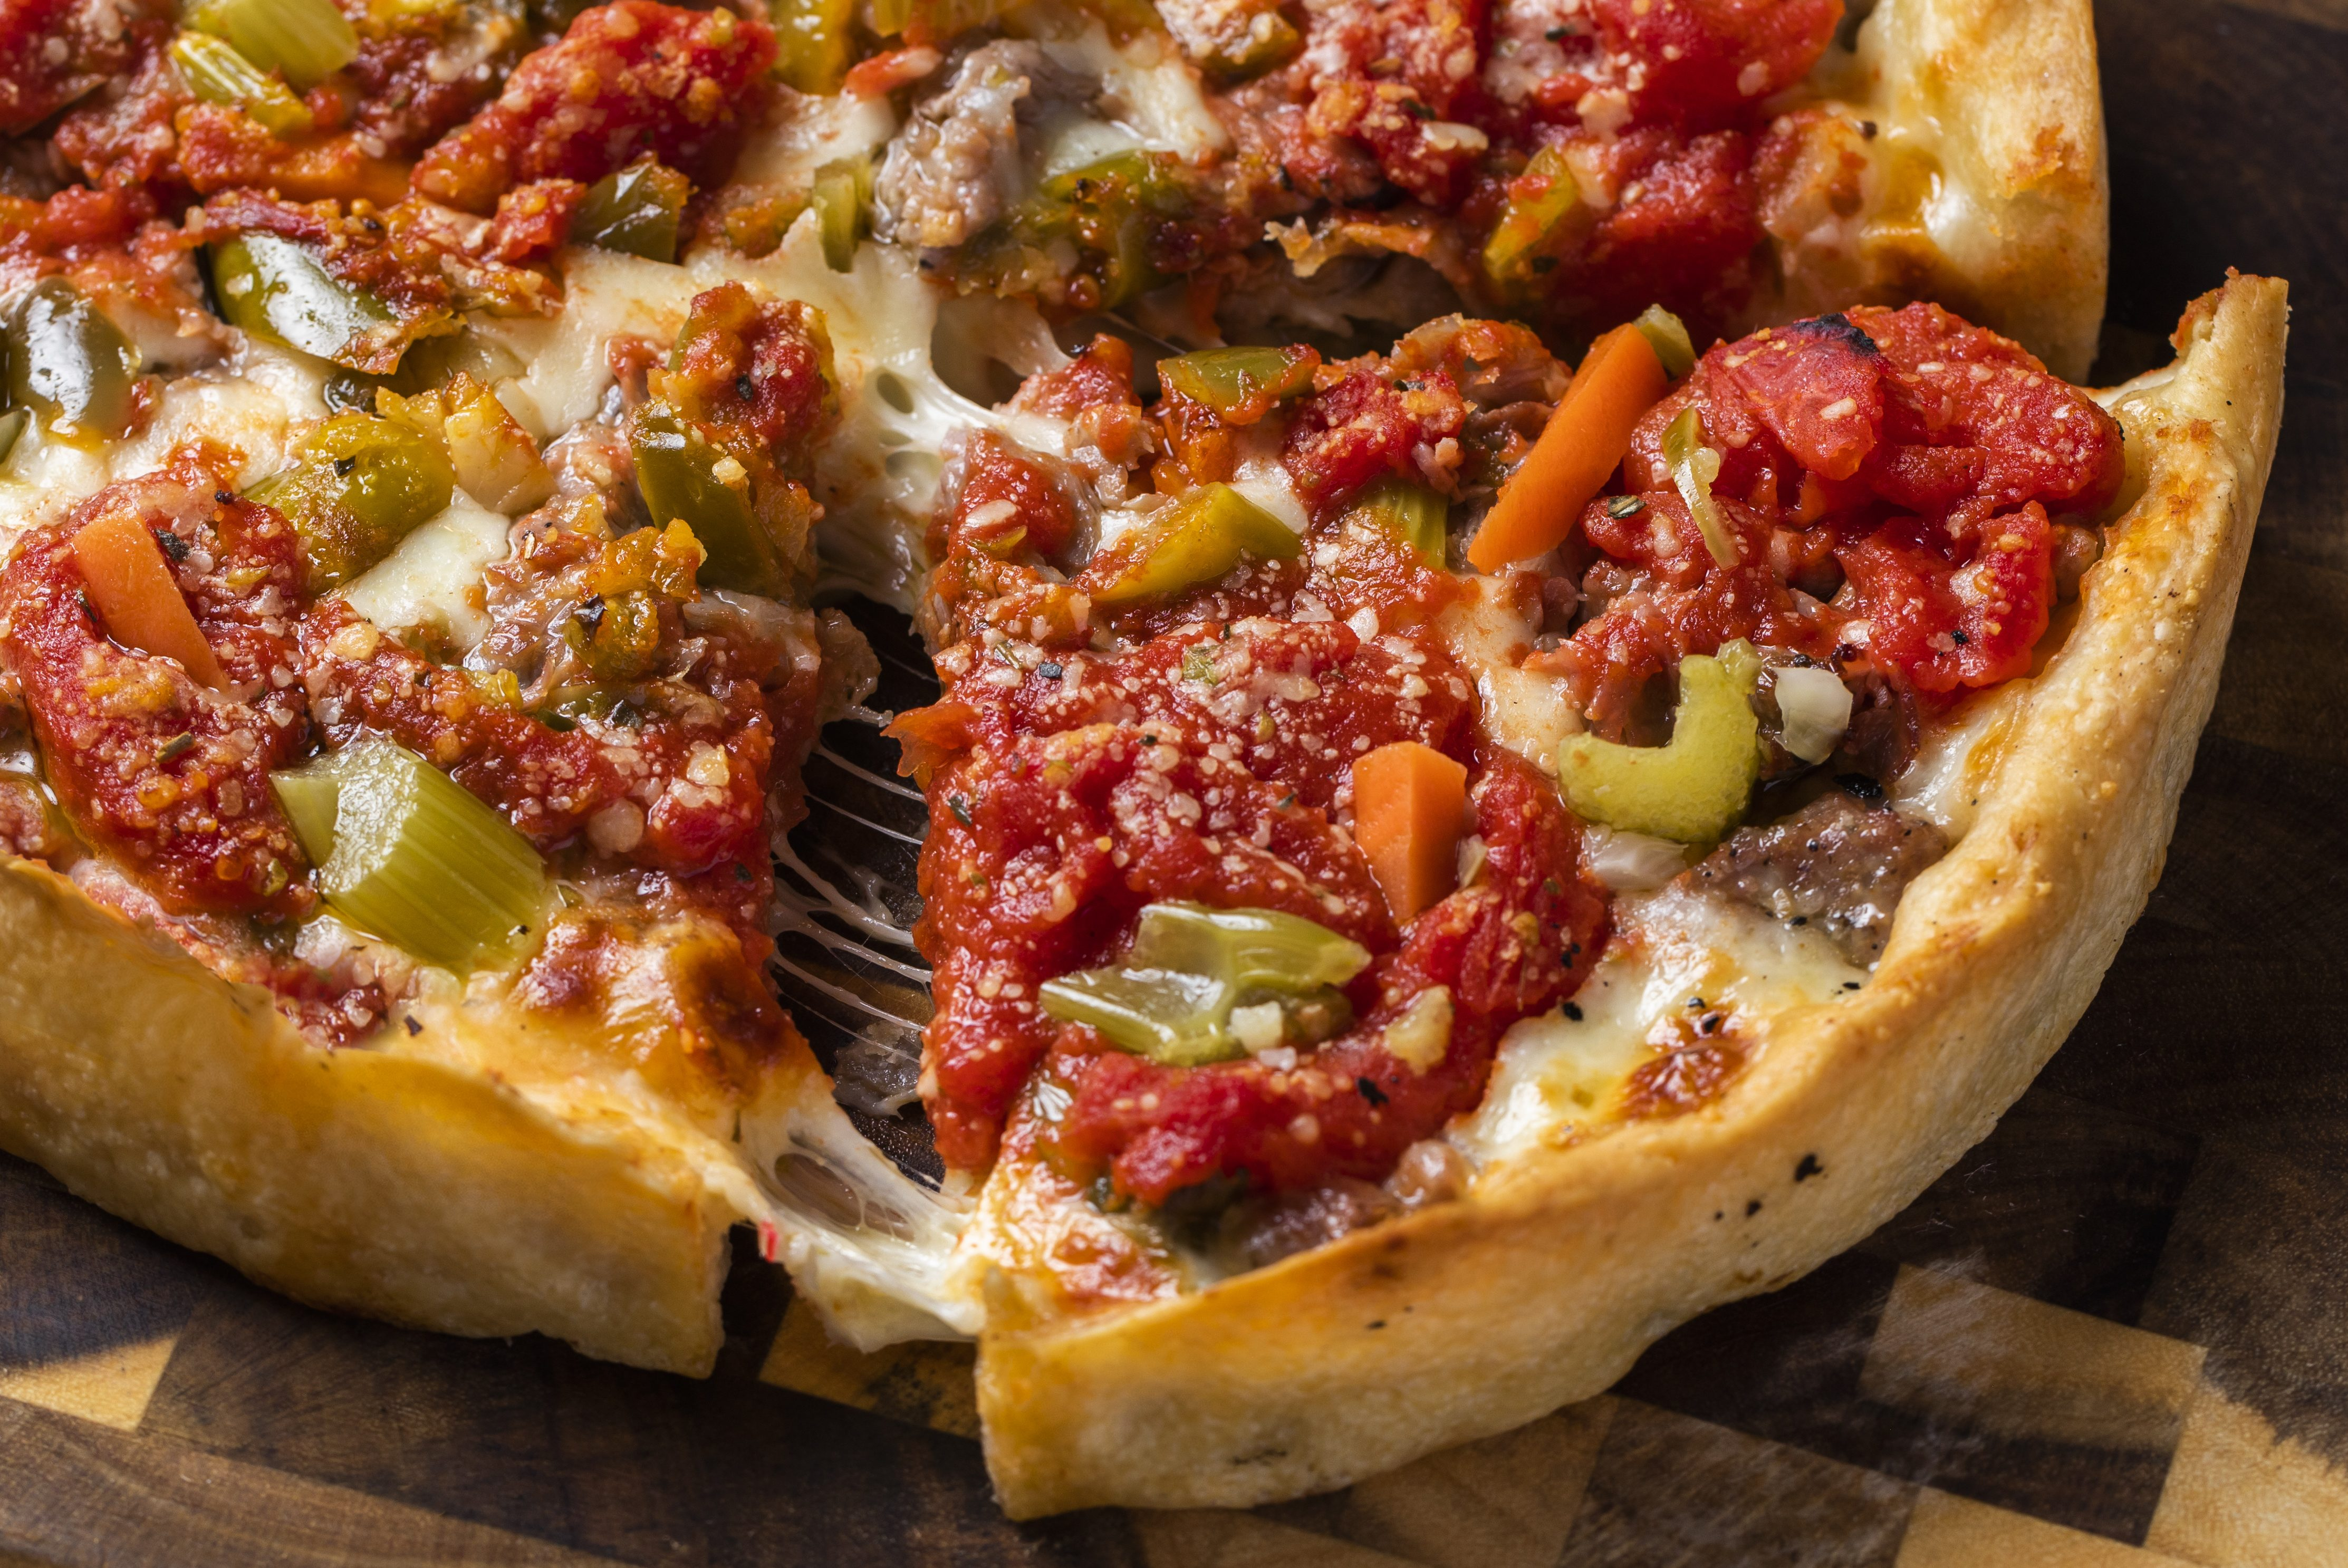 Lou Malnati's is launching an Italian beef and hot giardiniera pizza for National Pizza Month